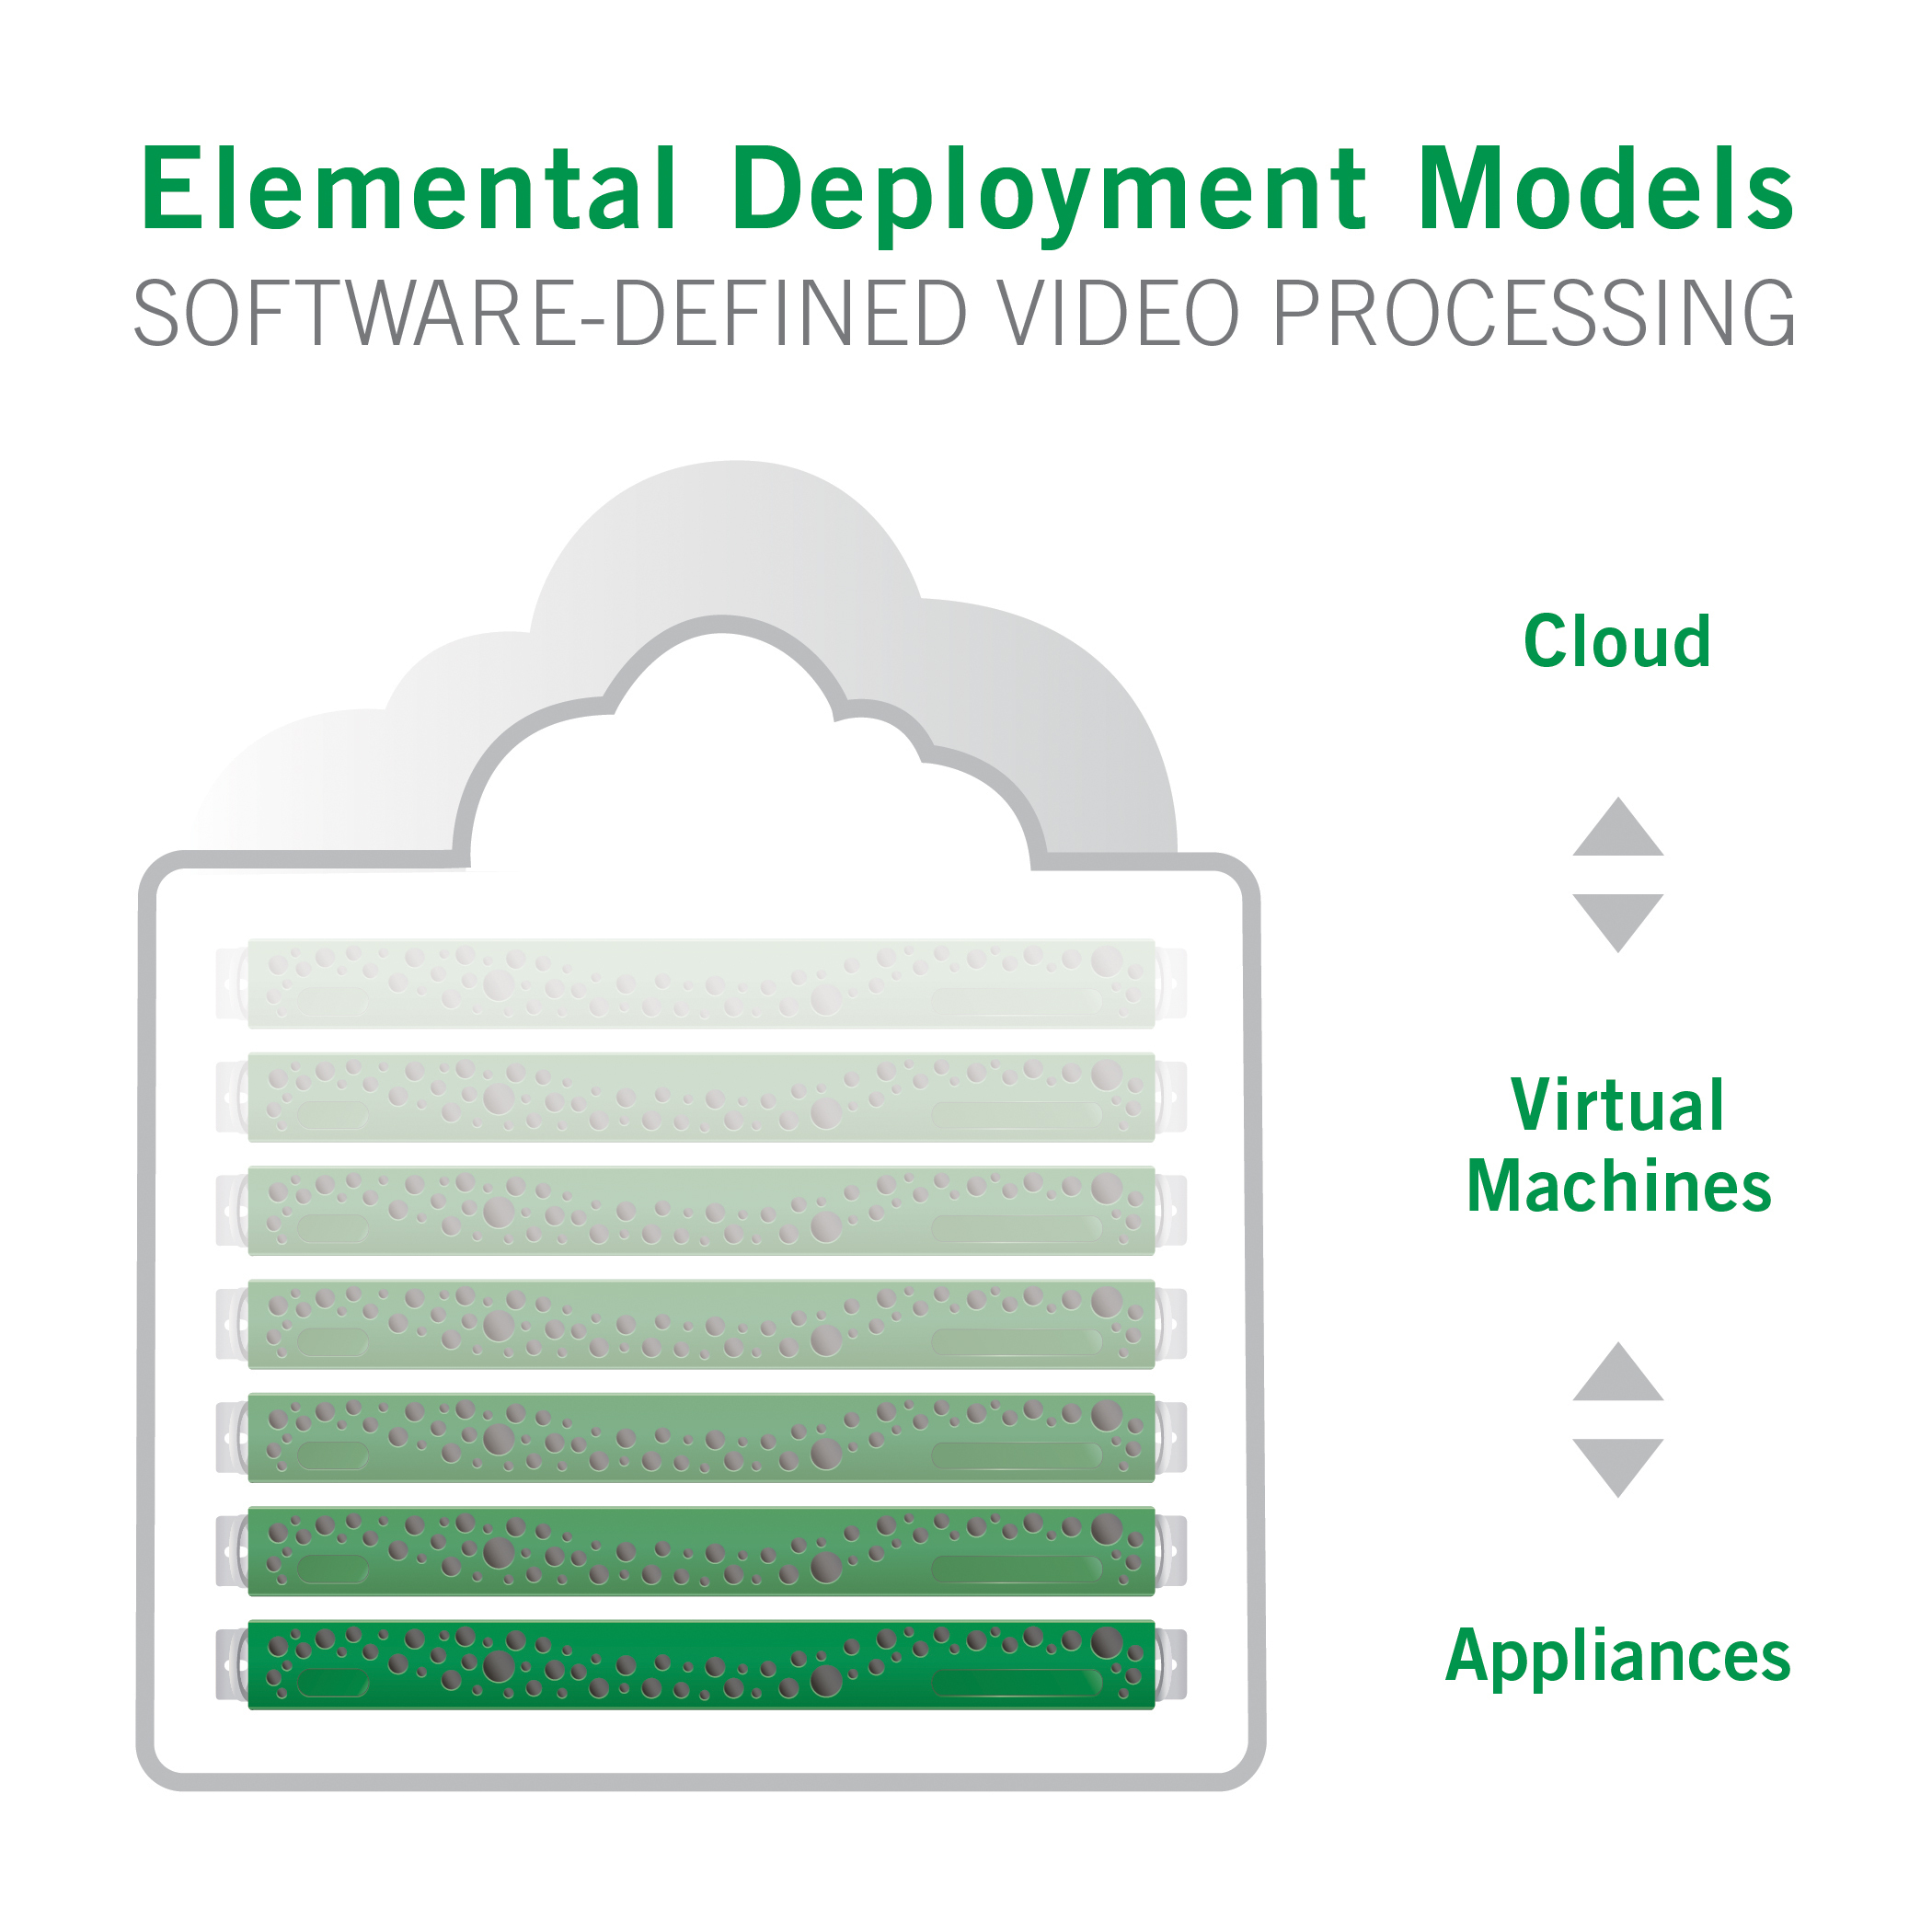 At NAB 2014, Elemental introduces software-defined video (SDV) solutions that enable pay TV operators, content programmers, broadcasters and other video providers to keep pace with an evolving industry embracing display formats like 4K Ultra HD and implementing standards like HEVC and MPEG-DASH. LVCC SU2724 (Graphic: Business Wire)